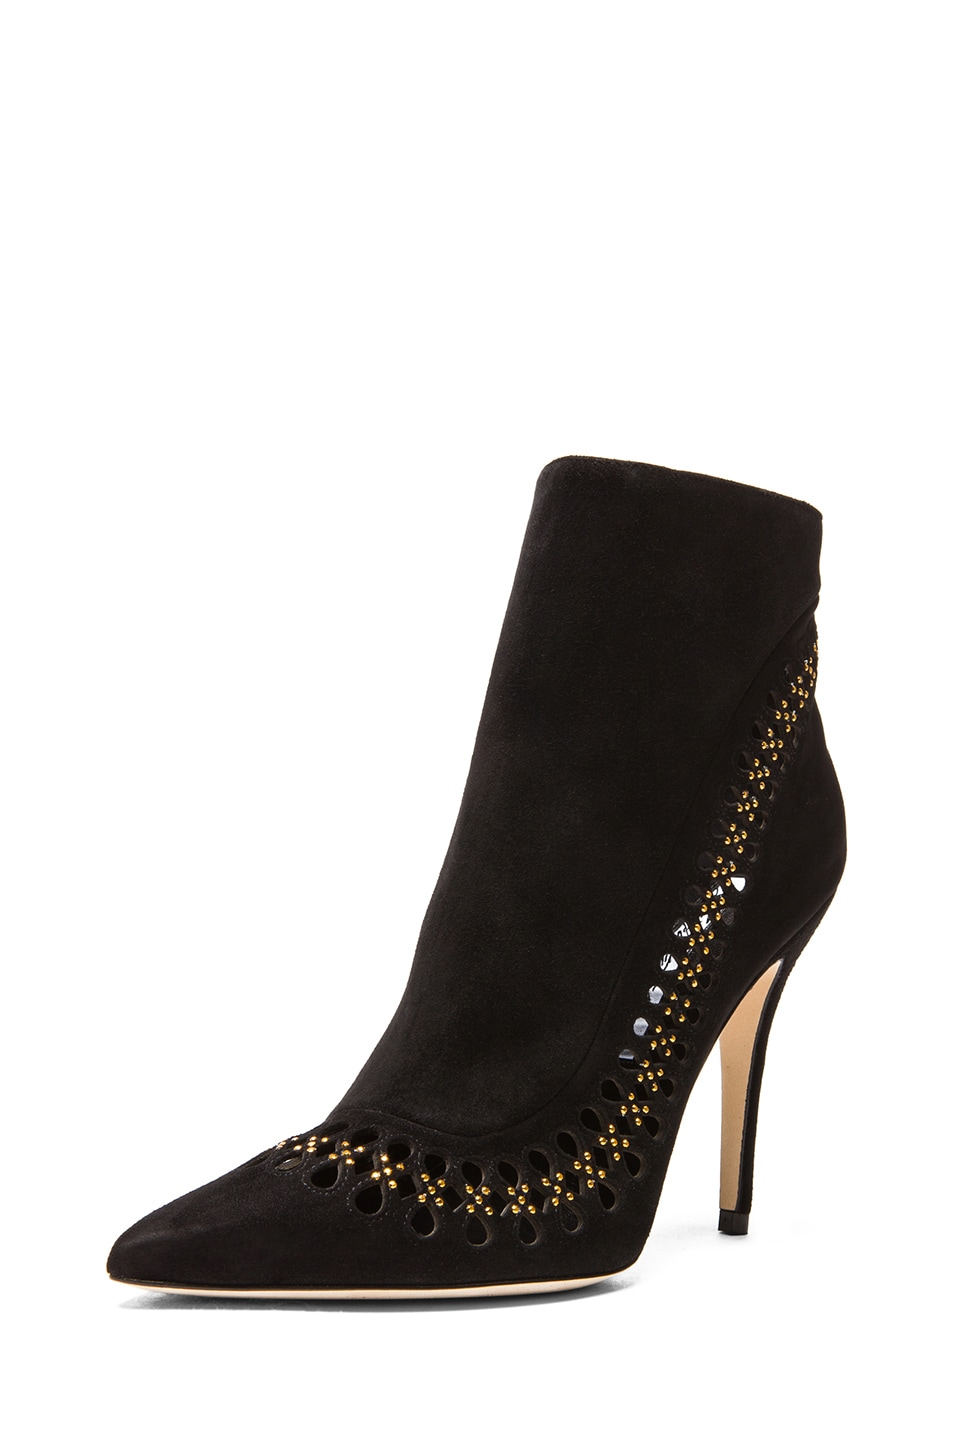 Image 2 of Brian Atwood Atena Suede Booties in Black